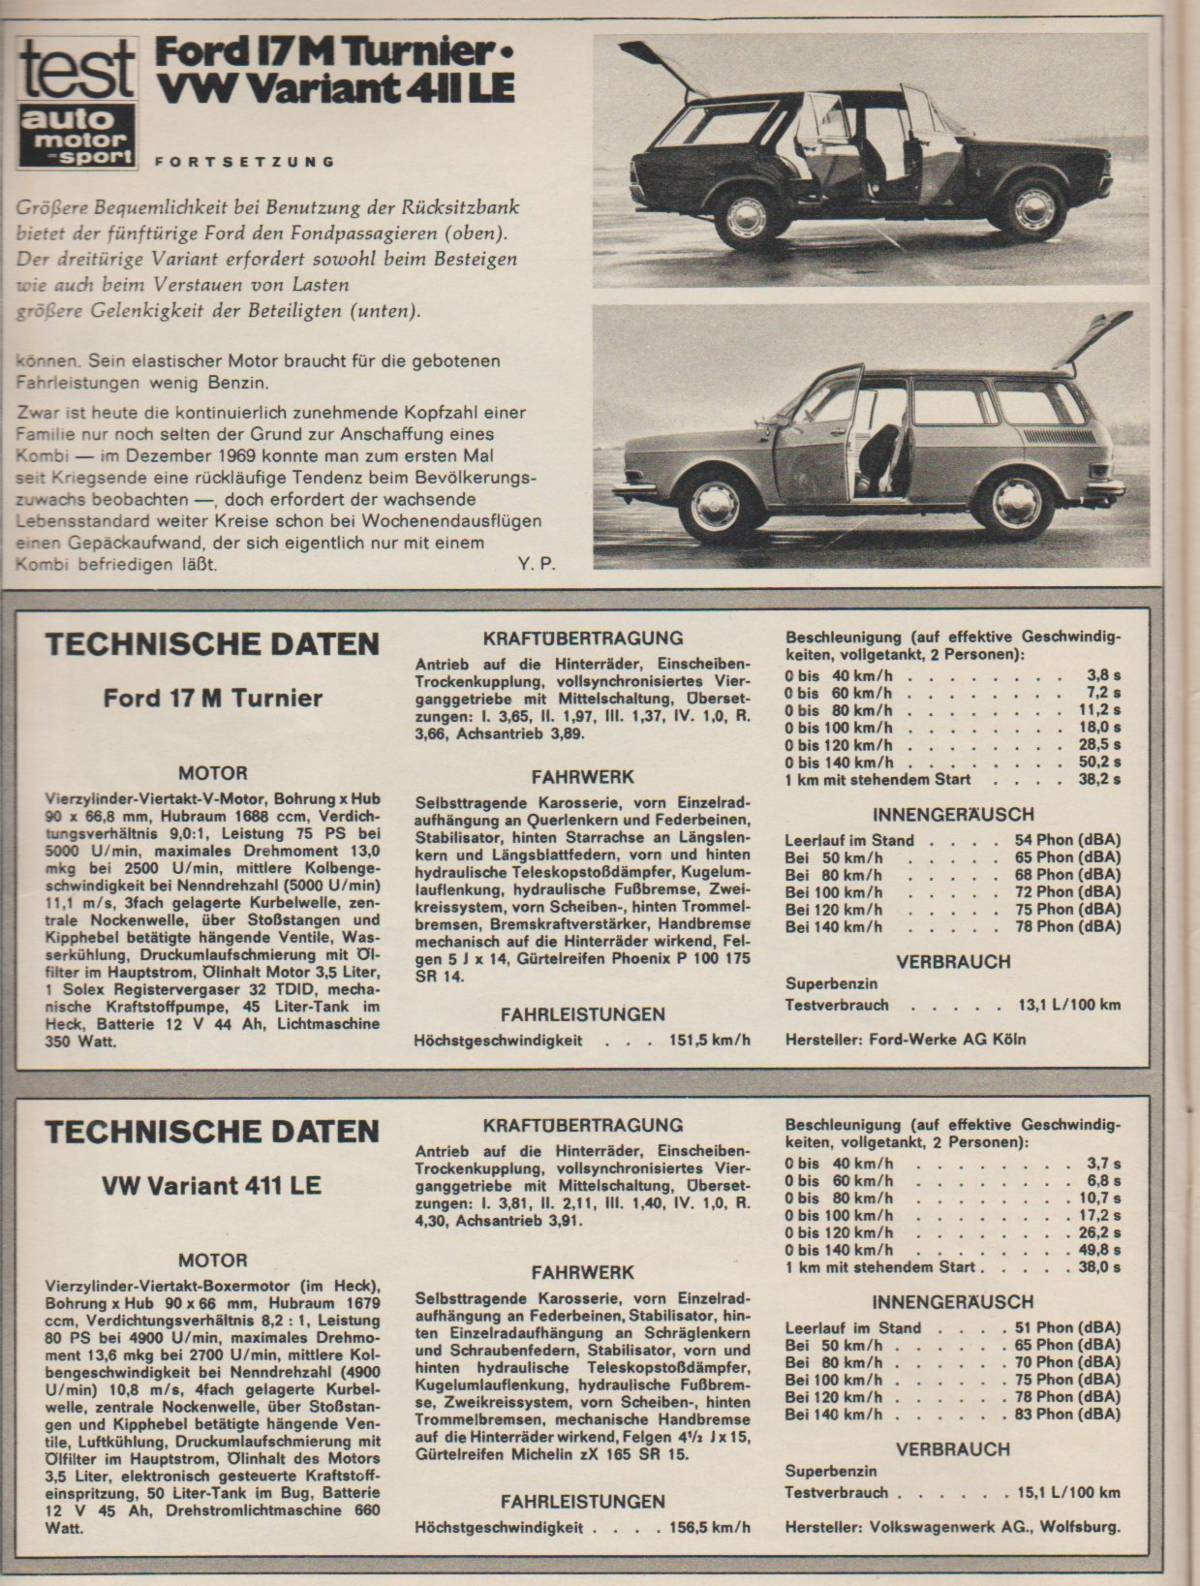 VW 411 LE Variant - Ford 17 M Turnier-04